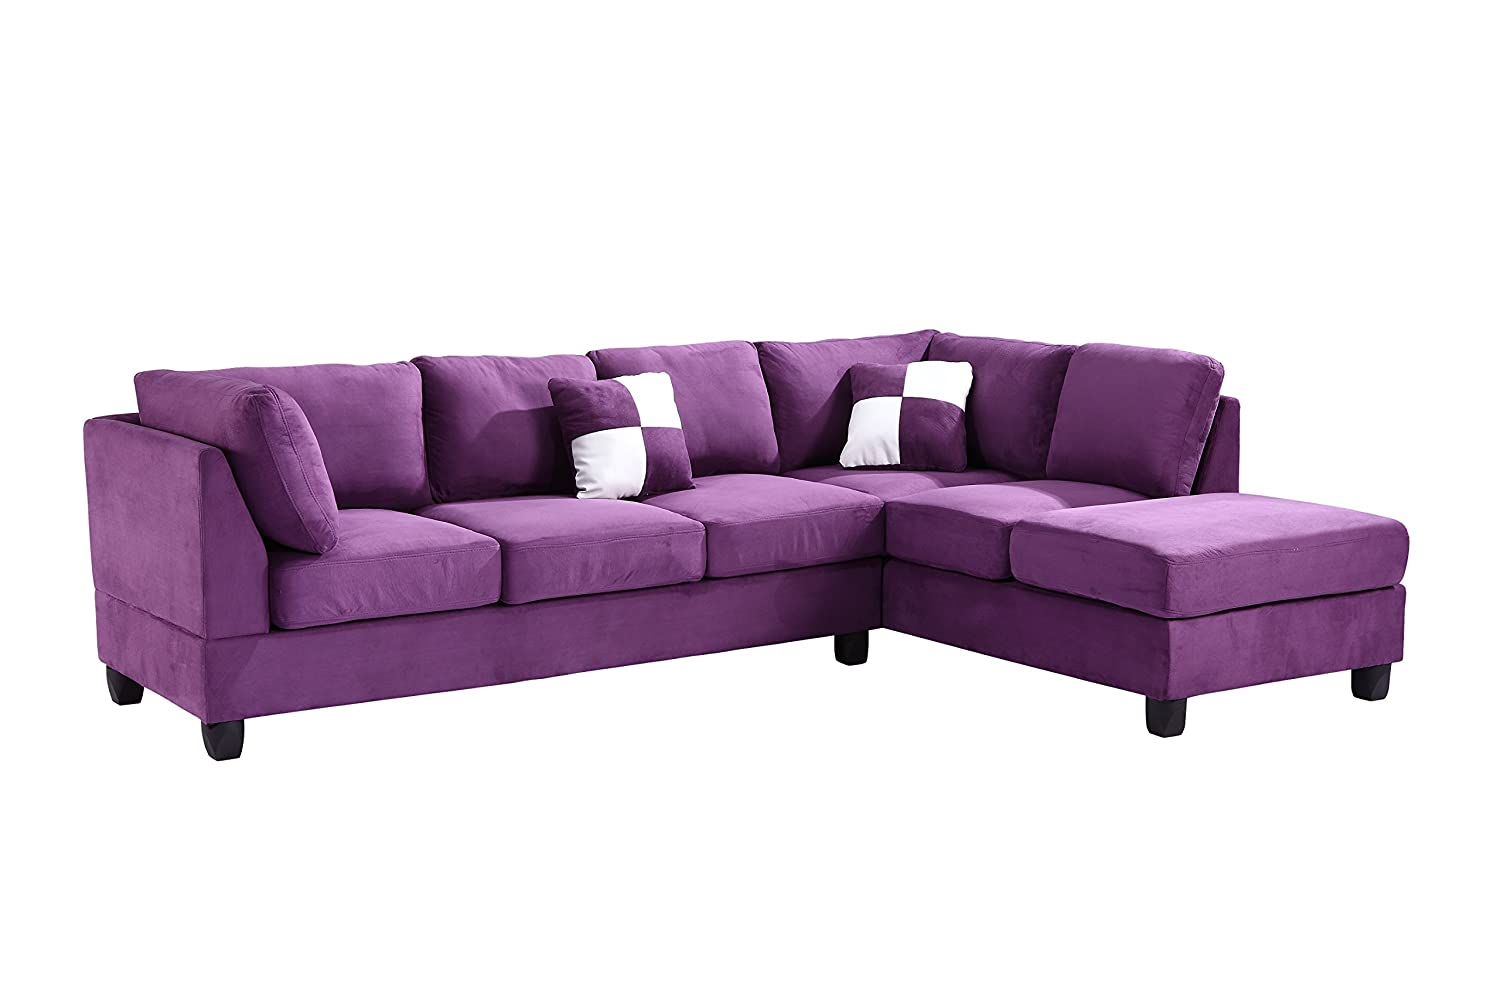 Purple Living Room Furniture Amazoncom Glory Furniture G637 Sc Sectional Sofa Purple 2